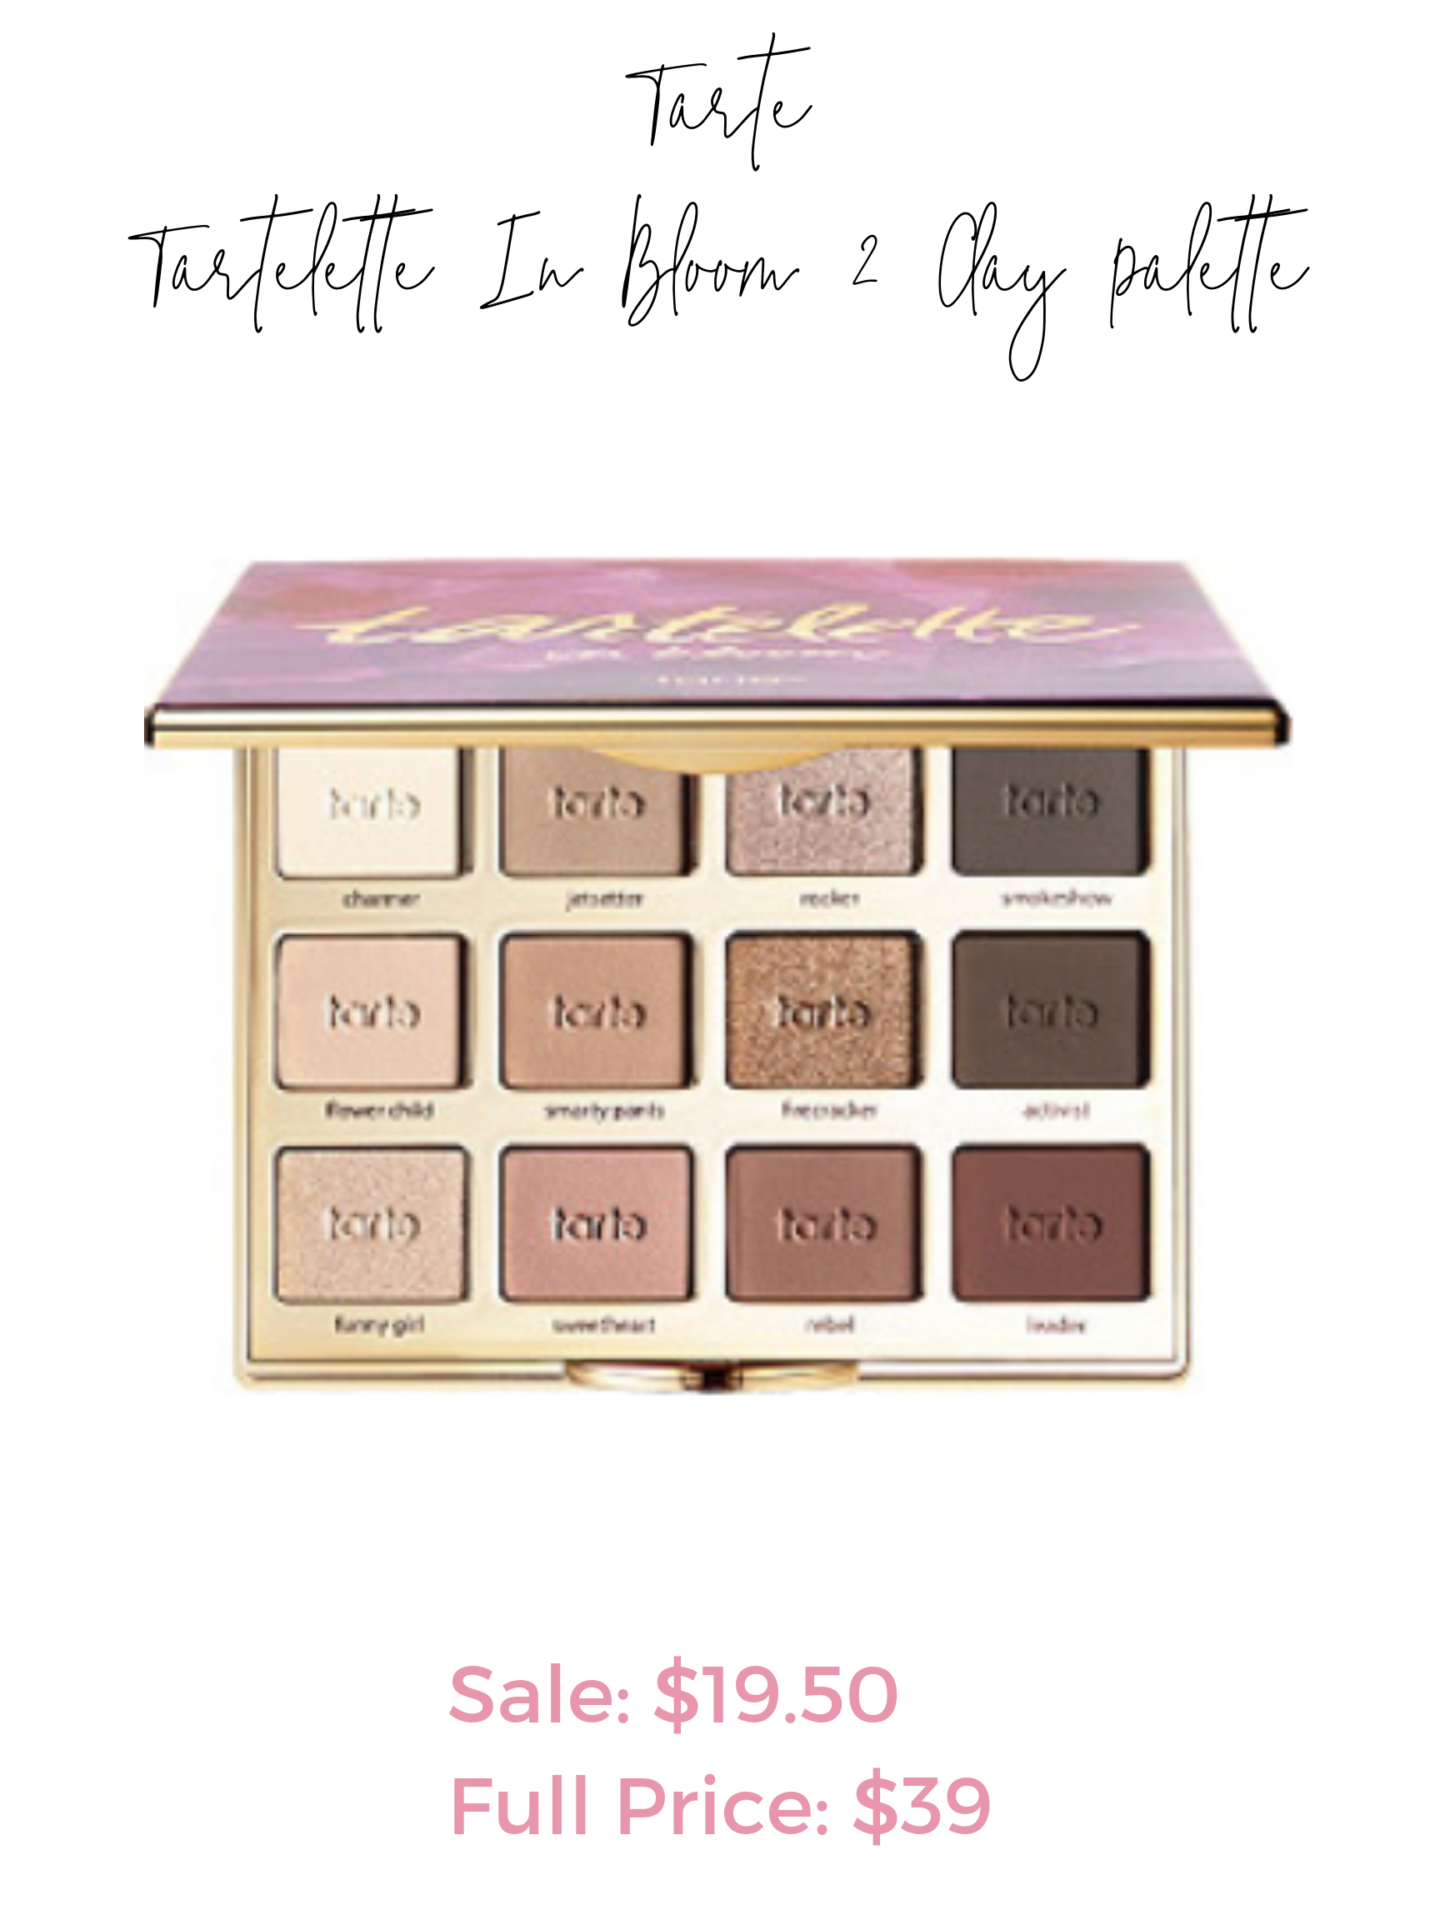 Ulta 21 days of beauty sale - Tarte Tartelette 2 In Bloom Clay Palette